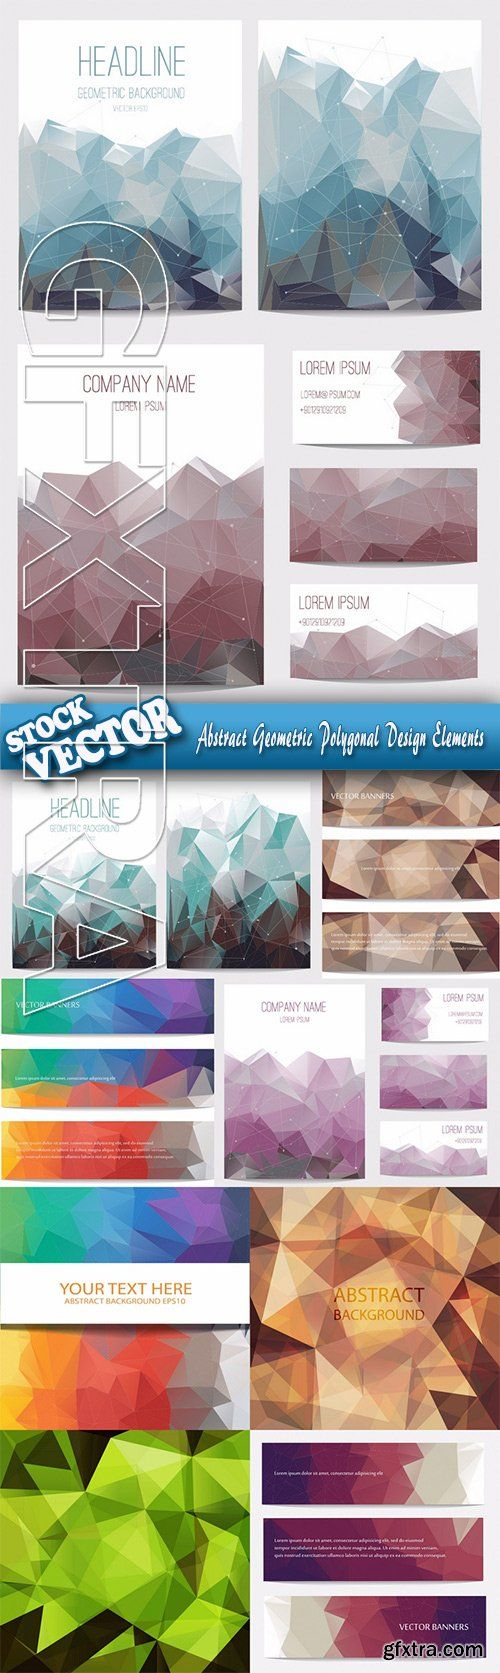 Stock Vector - Abstract Geometric Polygonal Design Elements